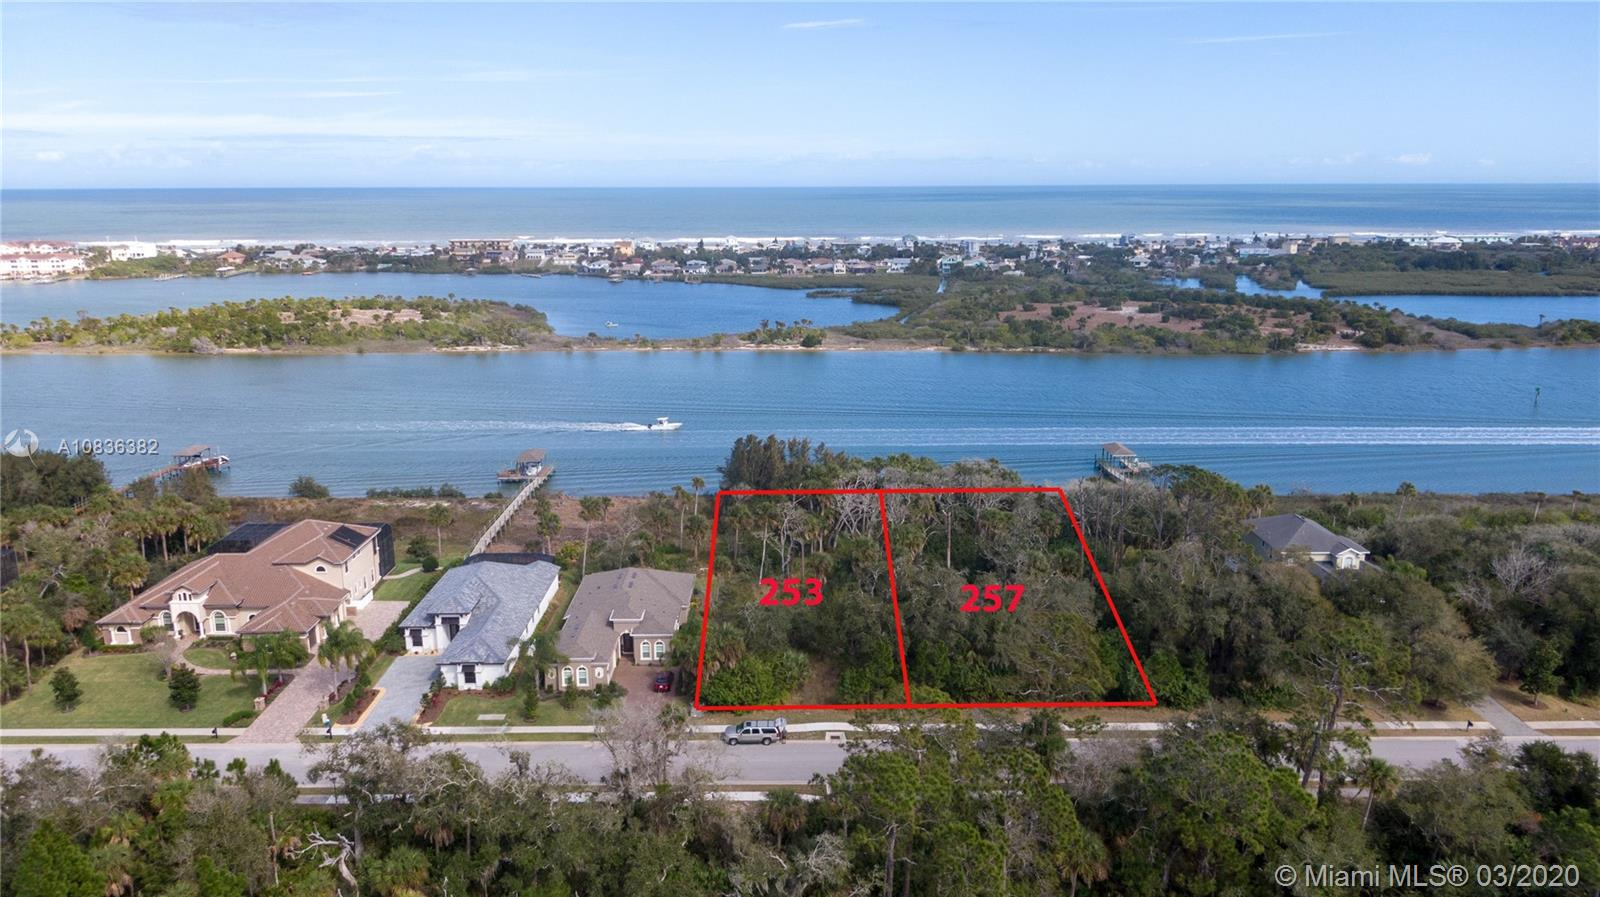 253 S Riverwalk Dr, Palm Coast, FL 32137